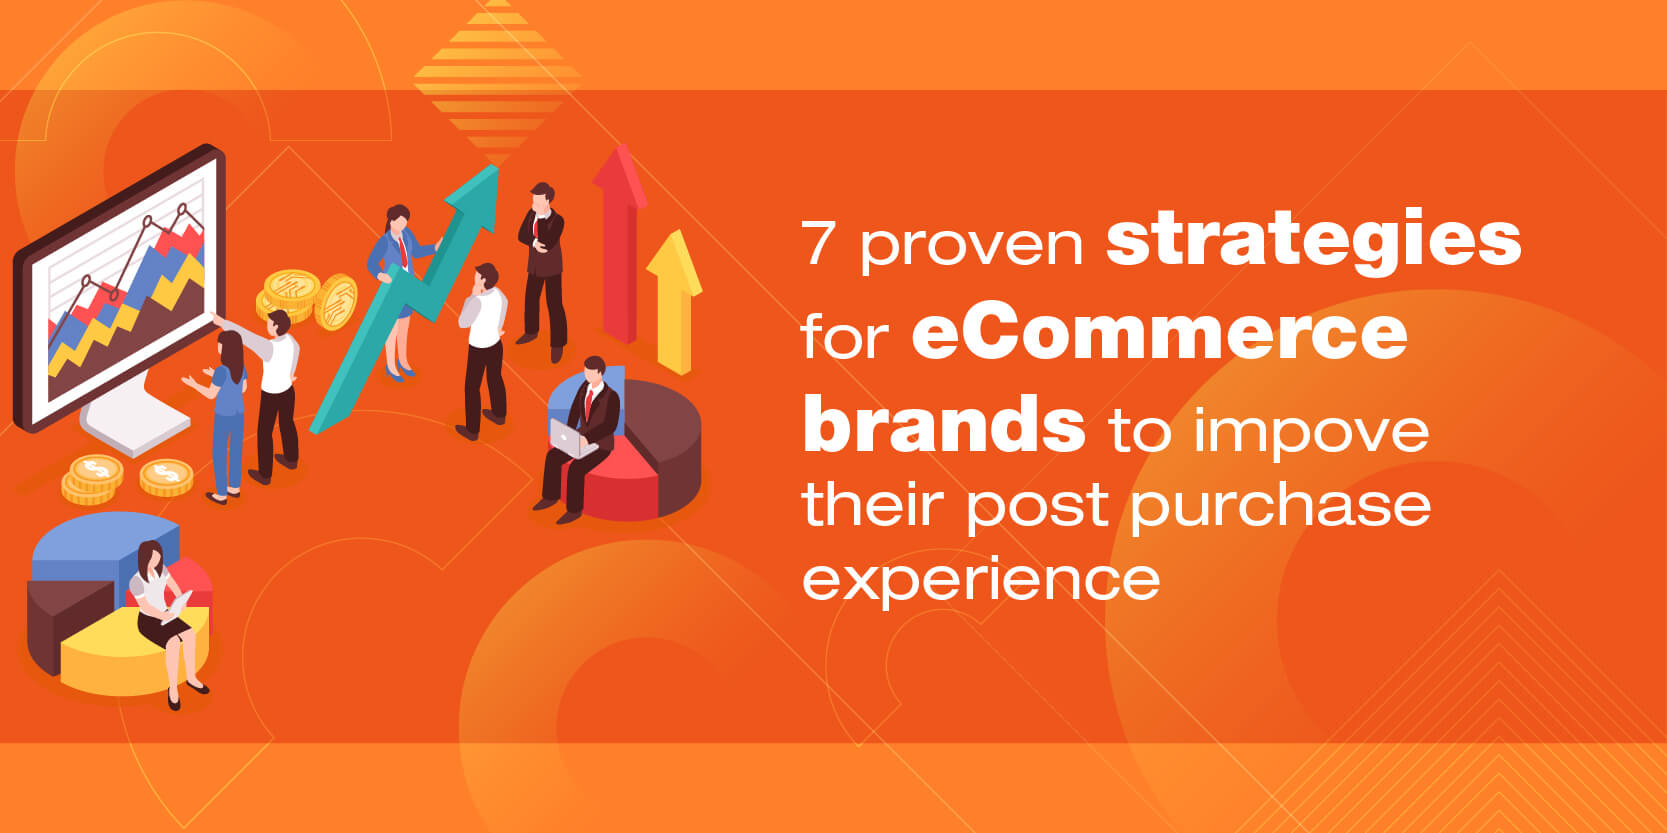 7 proven strategies for eCommerce brands to improve their post purchase experience